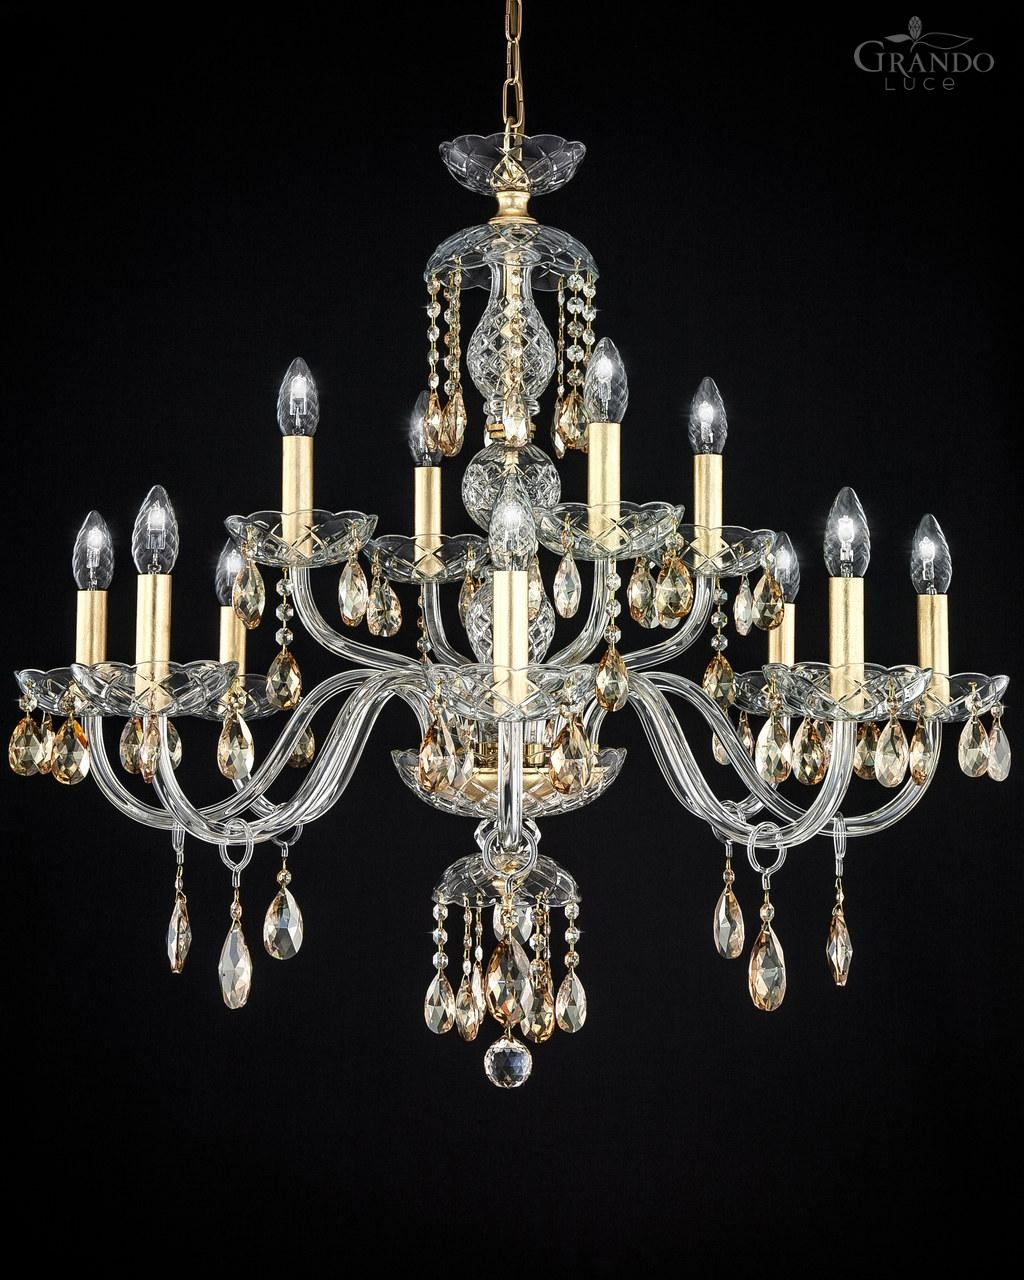 Chandelier Inspiring Gold Crystal Chandelier Gold Chandelier Regarding Crystal Gold Chandeliers (Image 8 of 25)